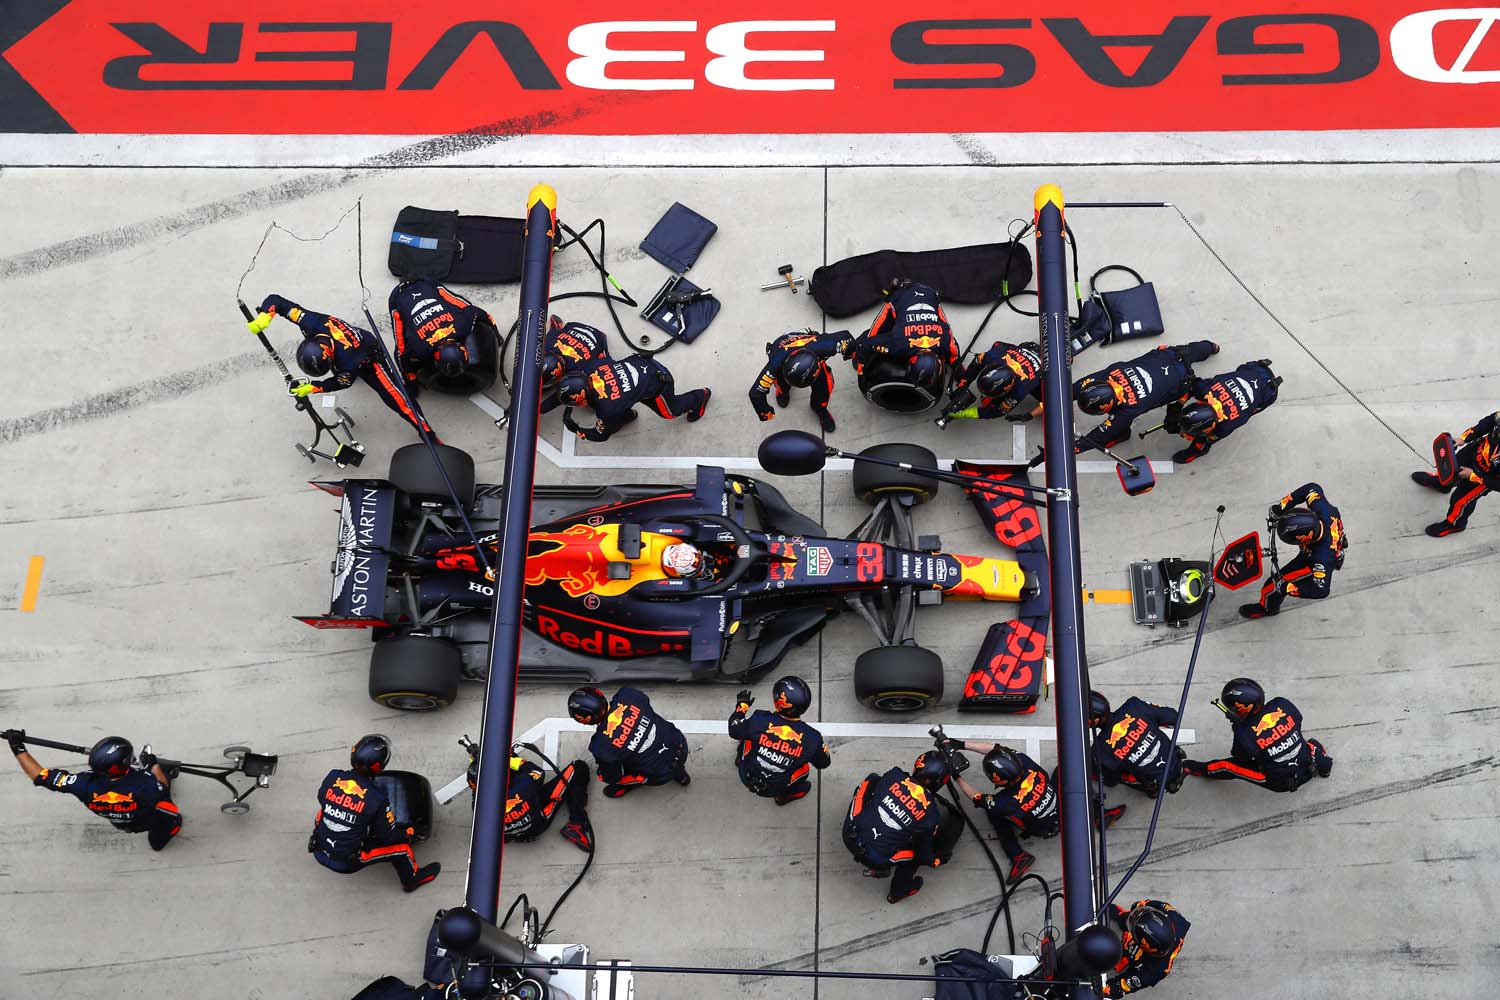 SHANGHAI, CHINA - APRIL 14: Max Verstappen of the Netherlands driving the (33) Aston Martin Red Bull Racing RB15 makes a pitstop for new tyres during the F1 Grand Prix of China at Shanghai International Circuit on April 14, 2019 in Shanghai, China. (Photo by Mark Thompson/Getty Images) // Getty Images / Red Bull Content Pool  // AP-1Z1EE189H1W11 // Usage for editorial use only // Please go to www.redbullcontentpool.com for further information. //